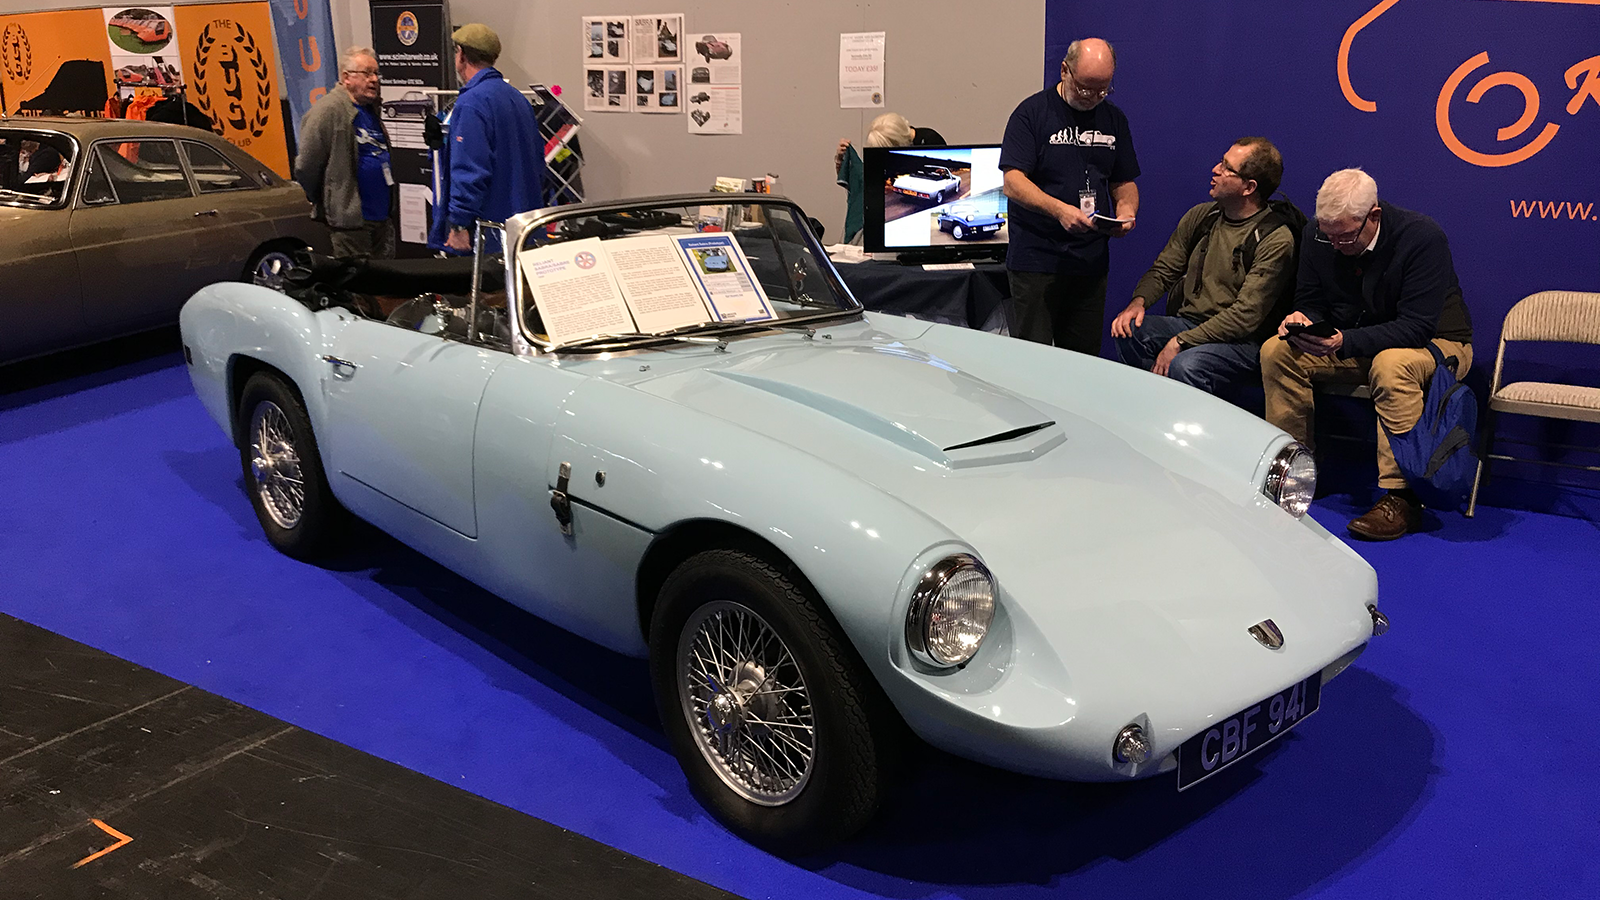 Our 18 favourite cars from the NEC Classic Motor Show 2019